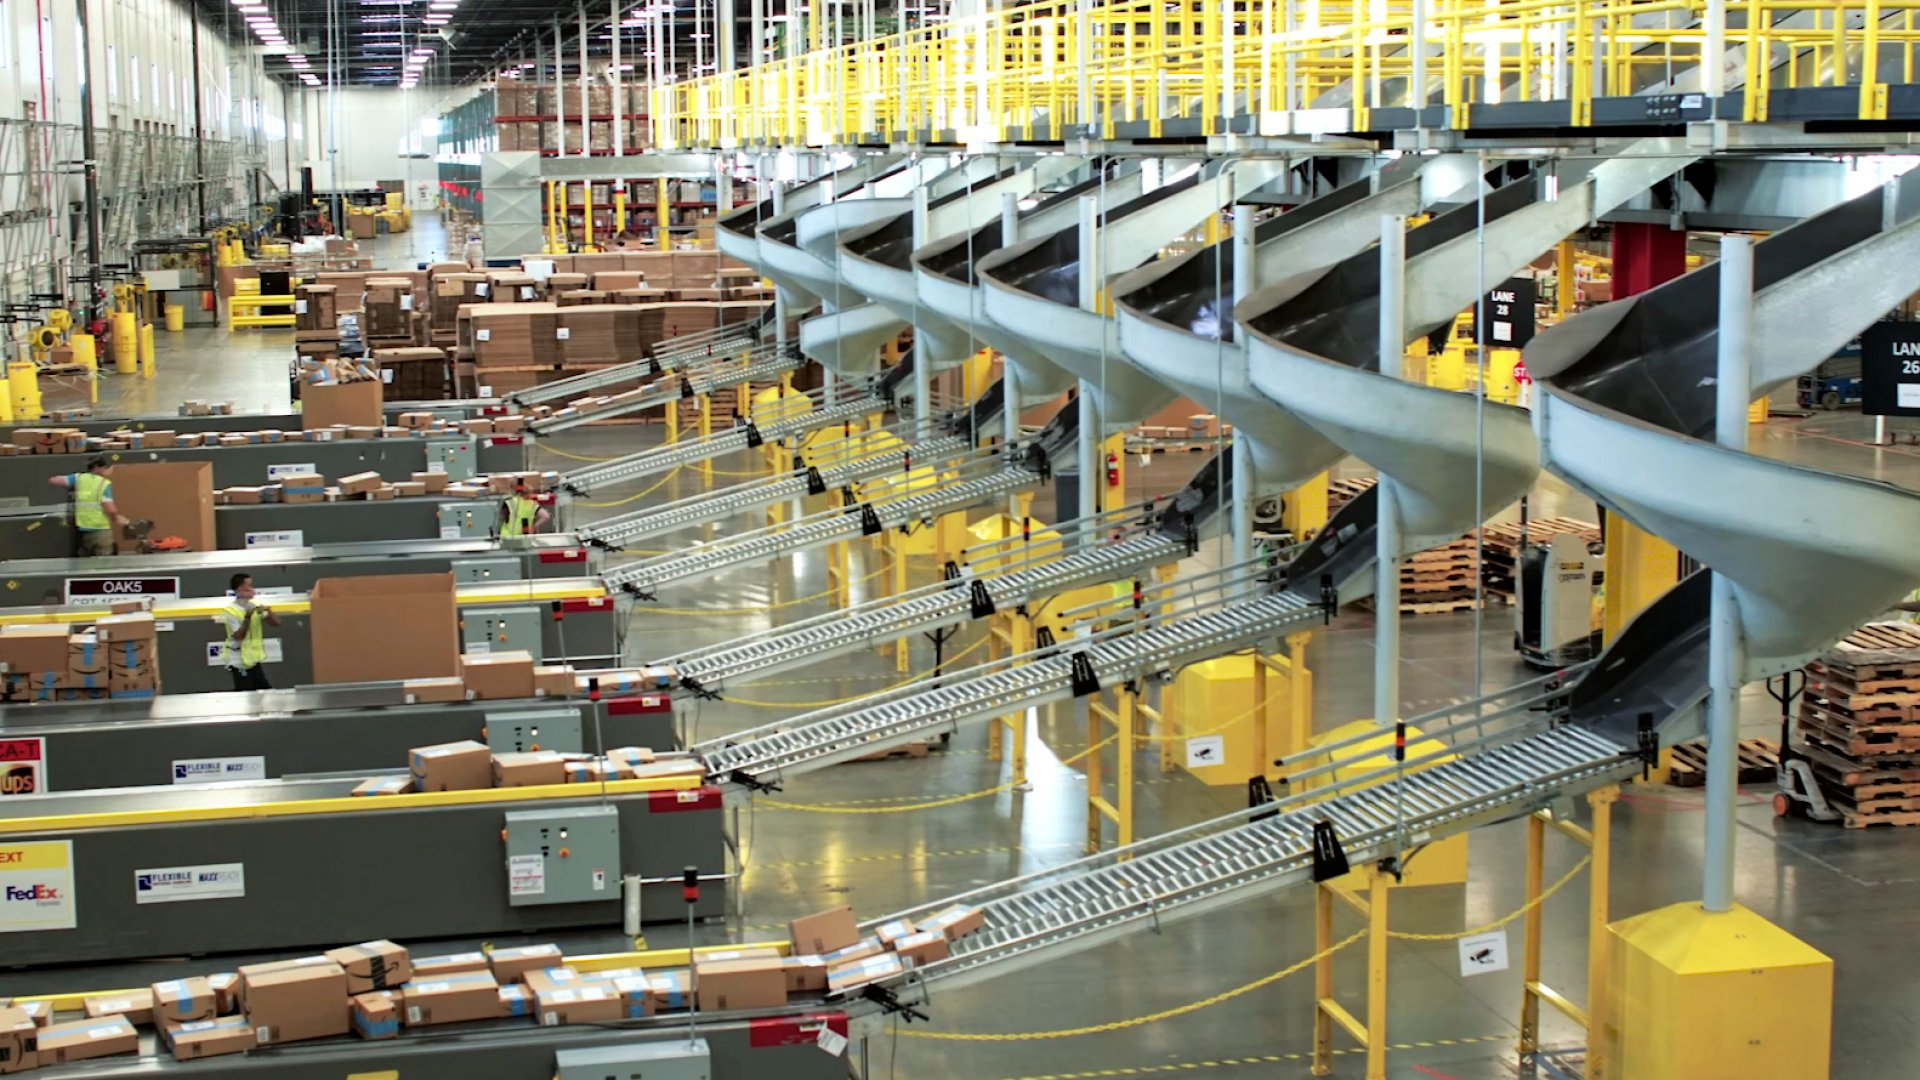 Amazon's Eighth Generation Fulfillment Center in Tracy, California.